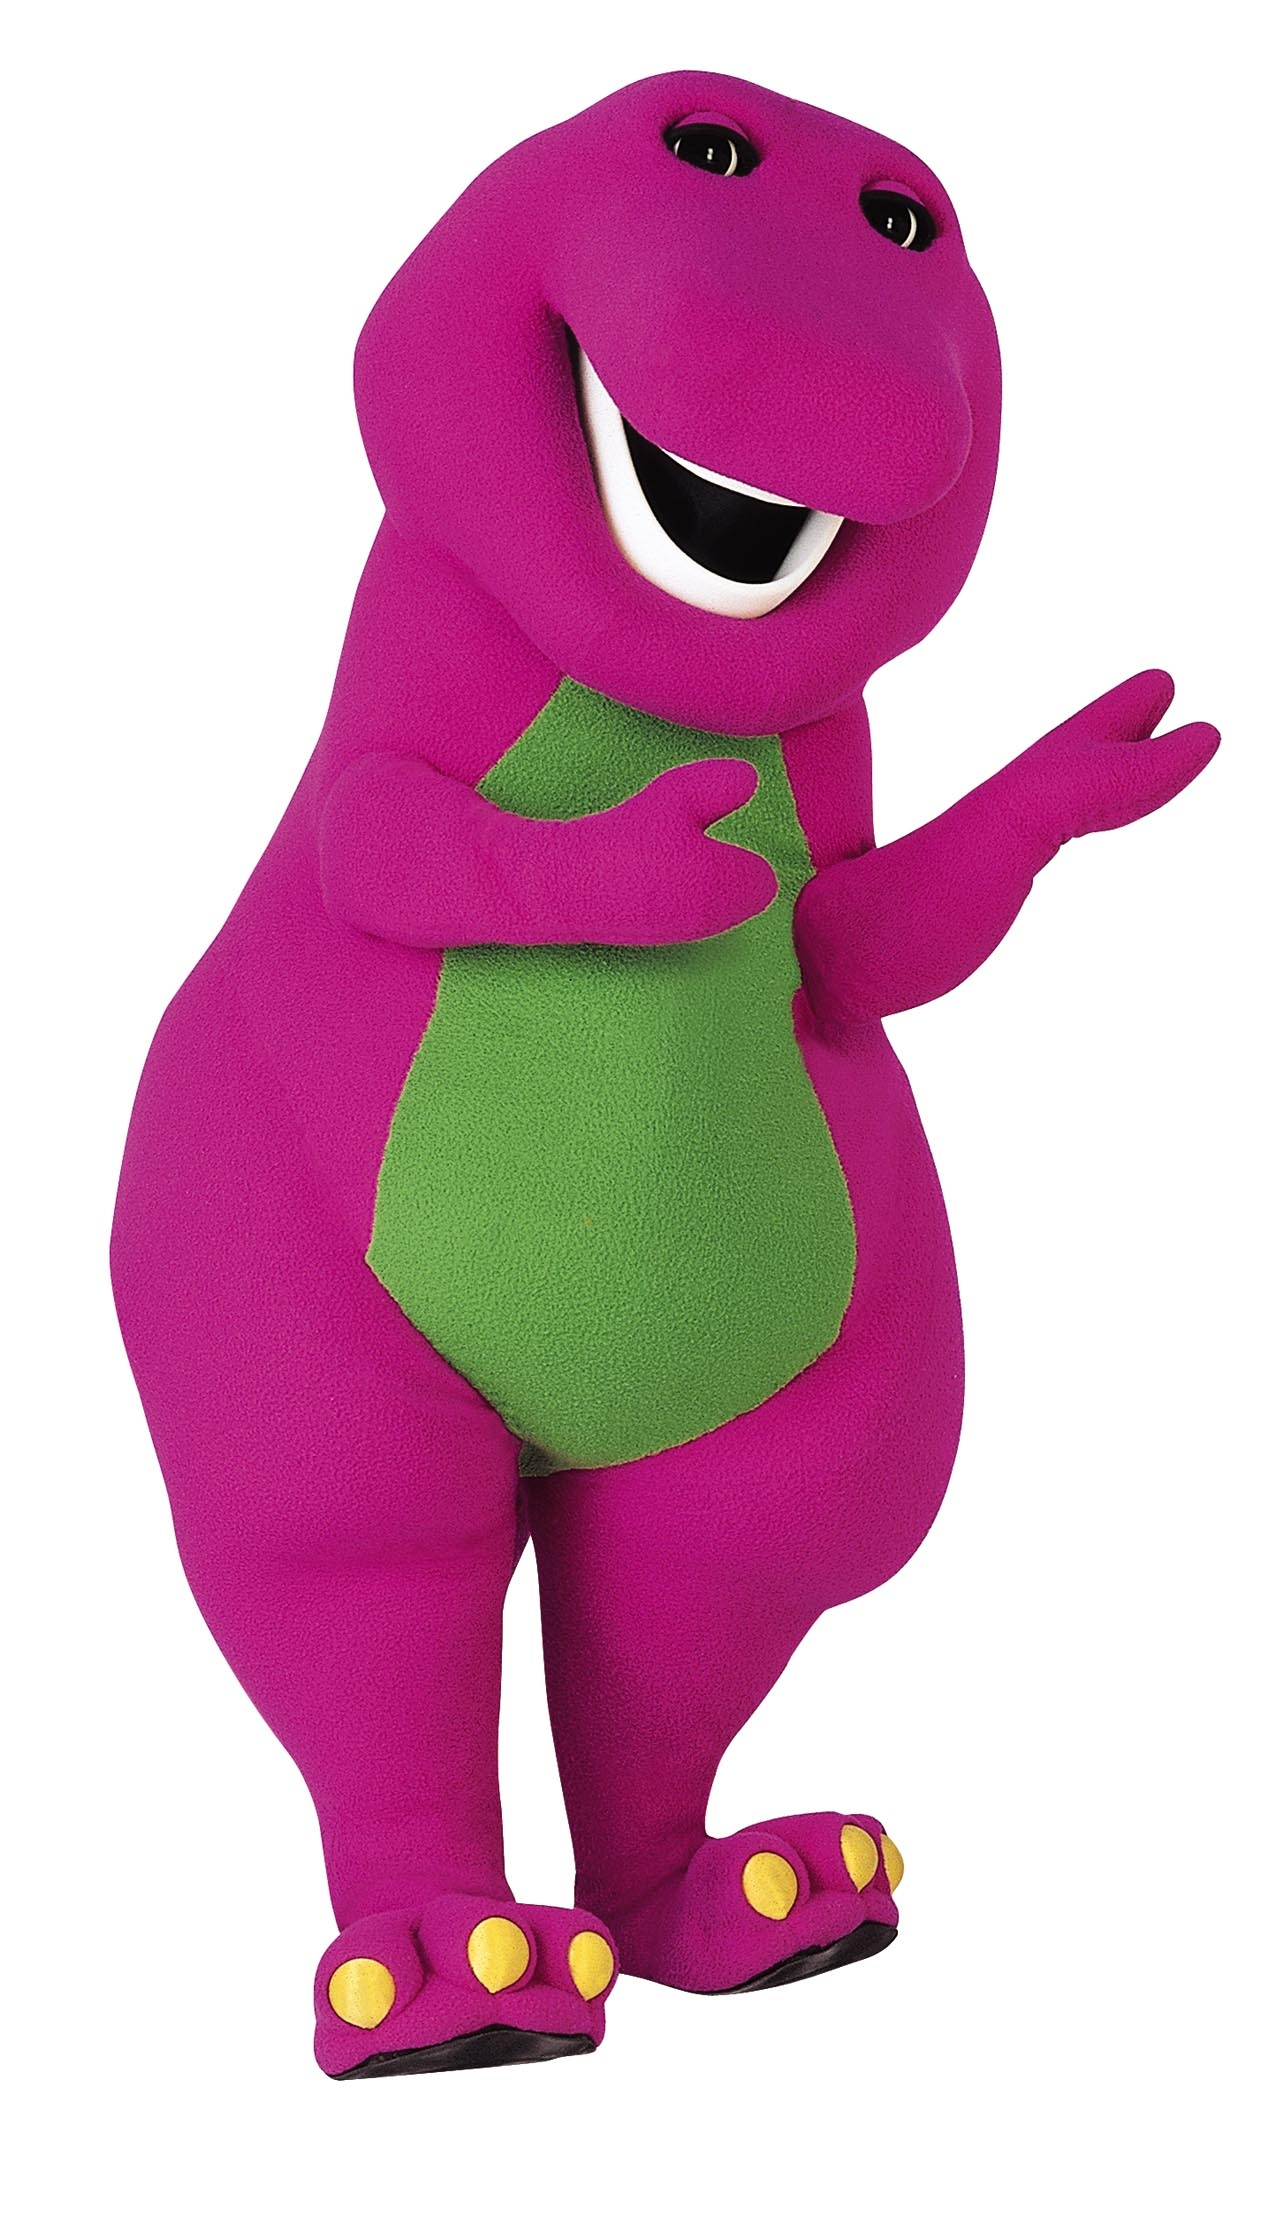 a comparison of the two educational shows for children sesame street and barney the dinosaur Barney vs sesame street sesame street and barney the dinosaur are two popular educational shows for children are they really teaching kids with the right techniques.